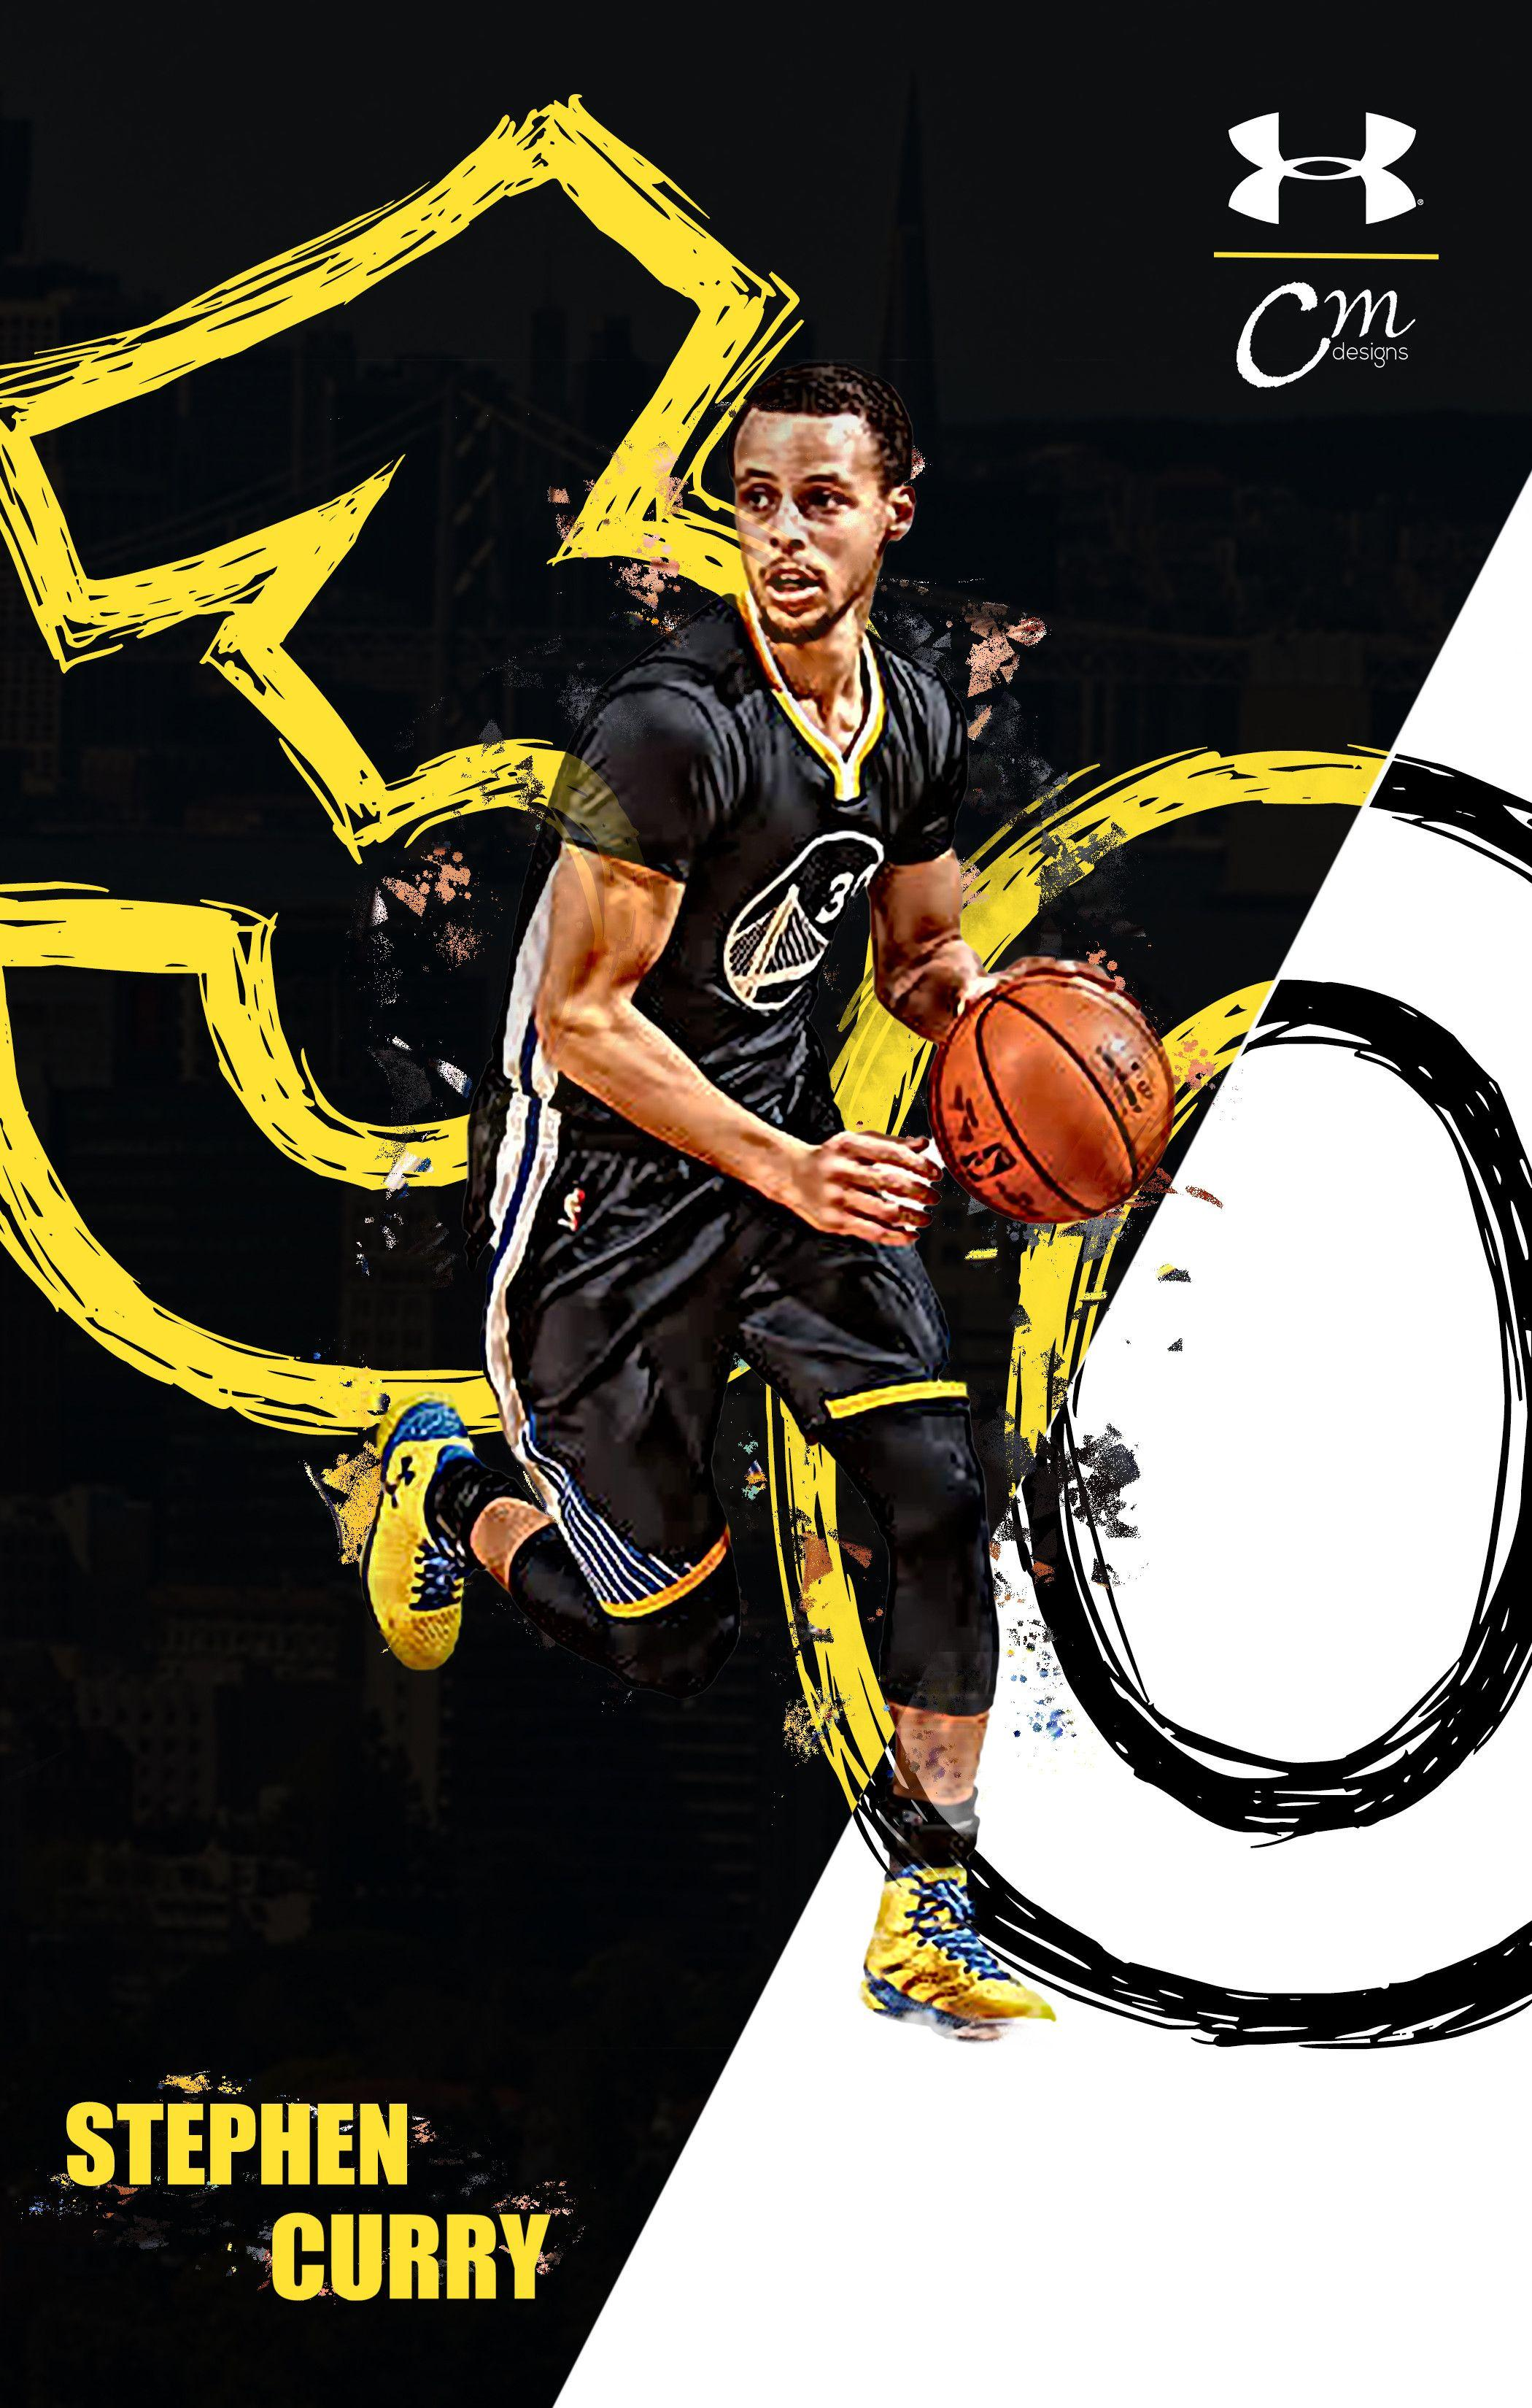 Stephen Curry 2019 Wallpapers Wallpaper Cave